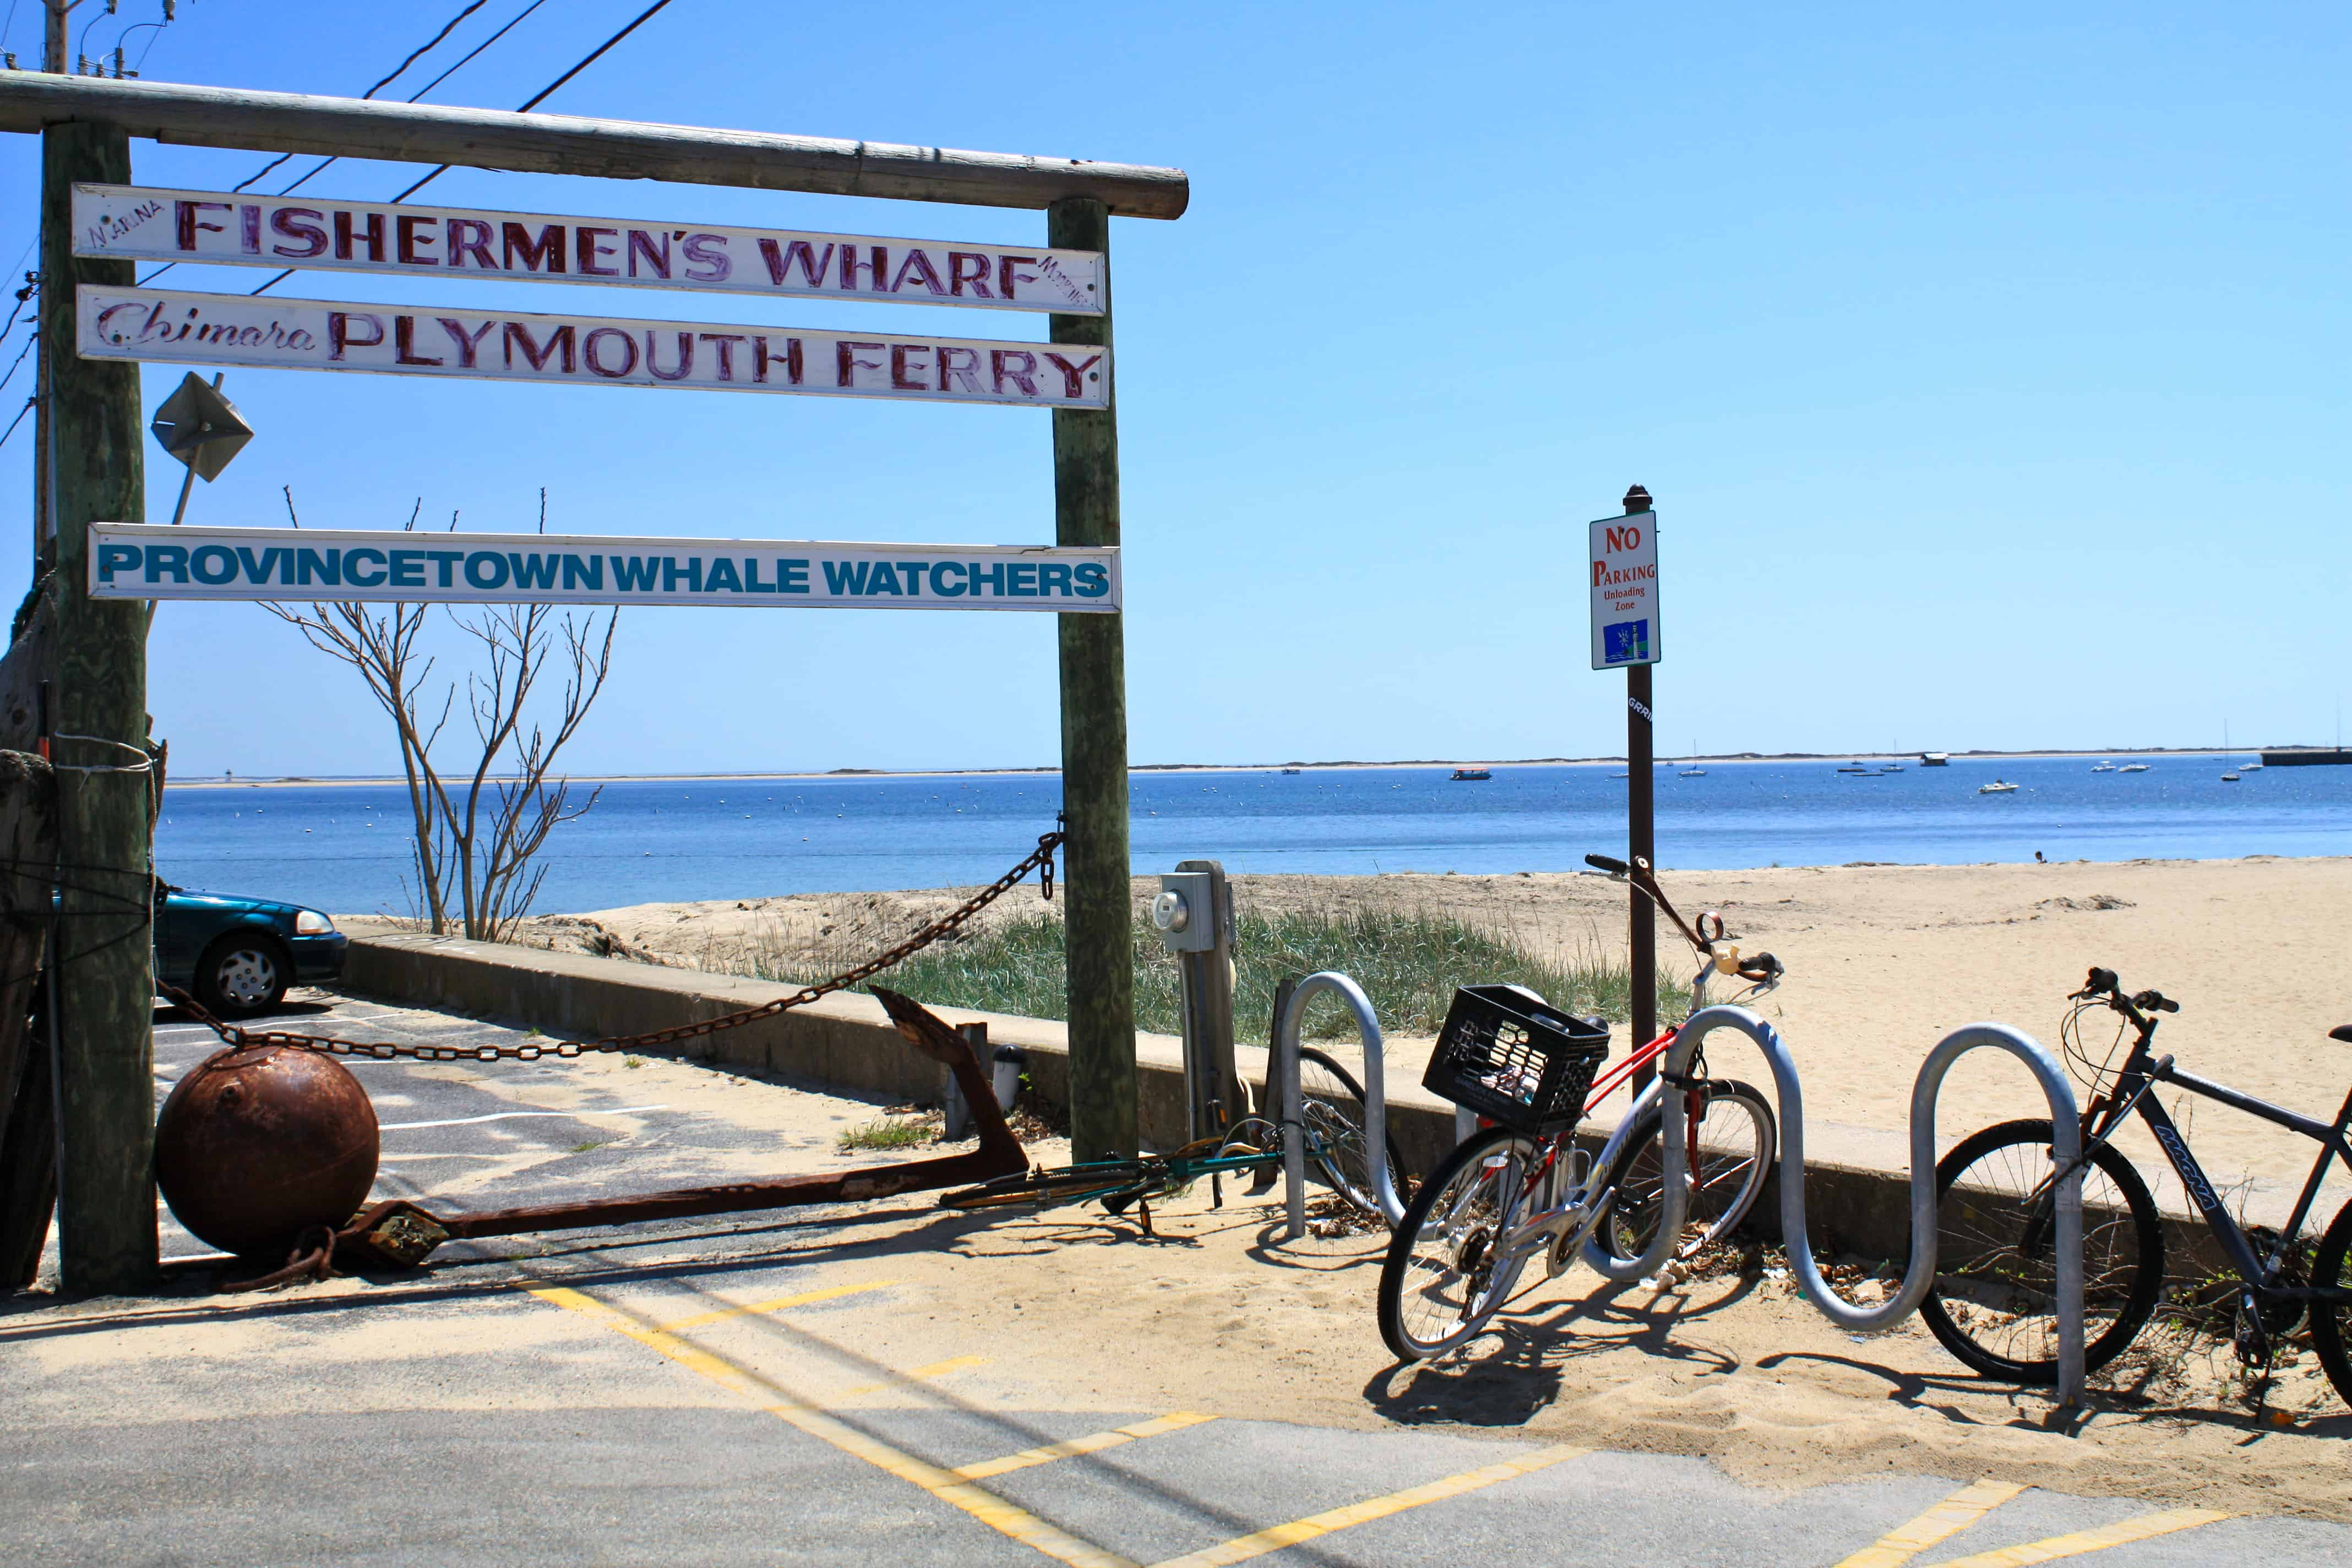 Where to stay on cape cod the platinum pebble boutique inn for 5 day getaway ideas